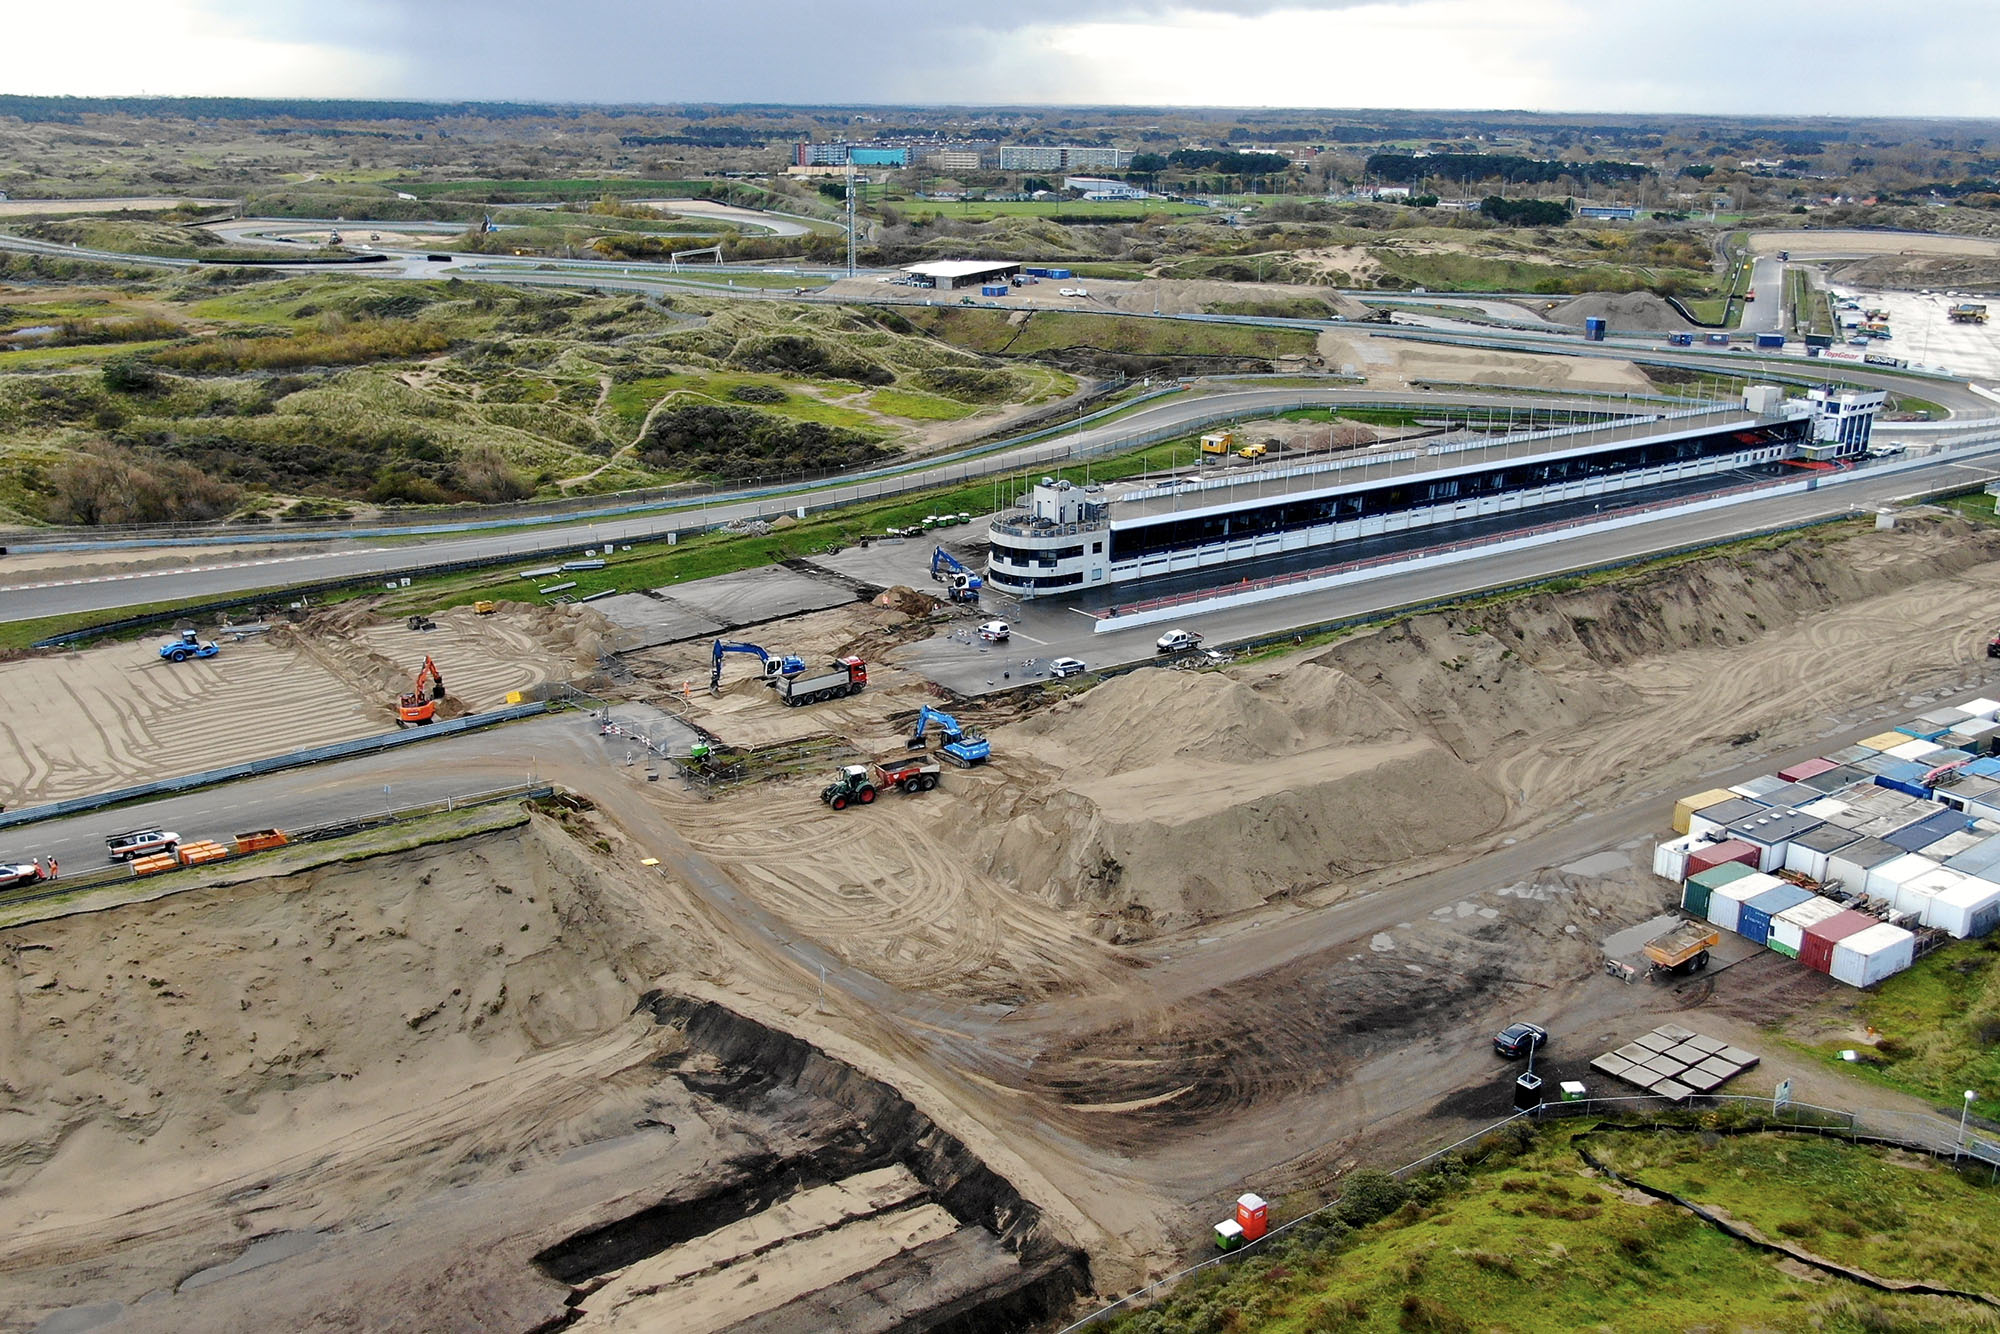 Construction work on the pit straight at Zandvoort ahead of the 2020 Dutch Grand Prix